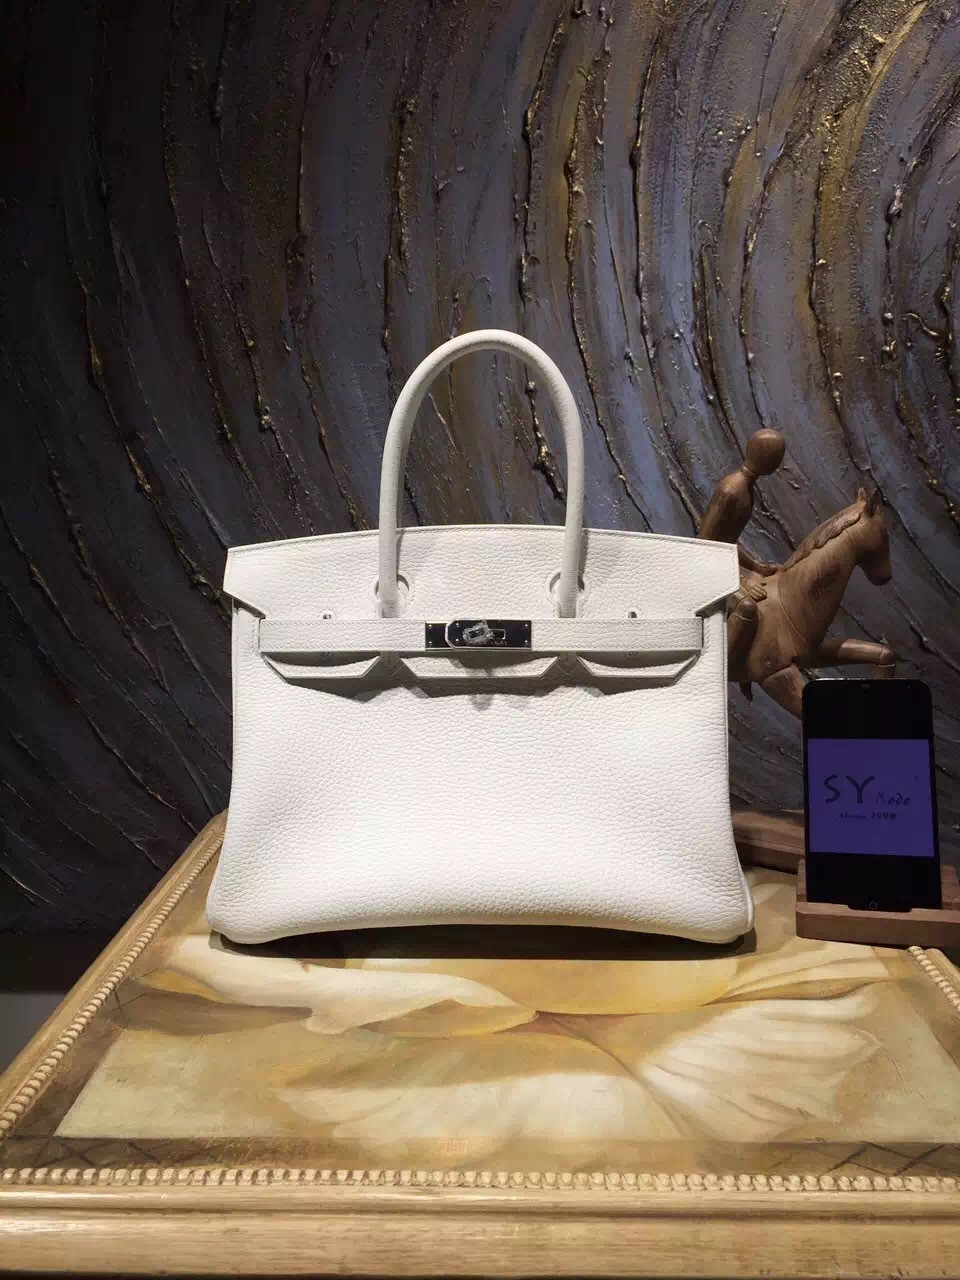 0b758bf94899 Replica High Quality Hermes Birkin 35cm Togo Calfskin Bag Handstitched  Palladium Hardware